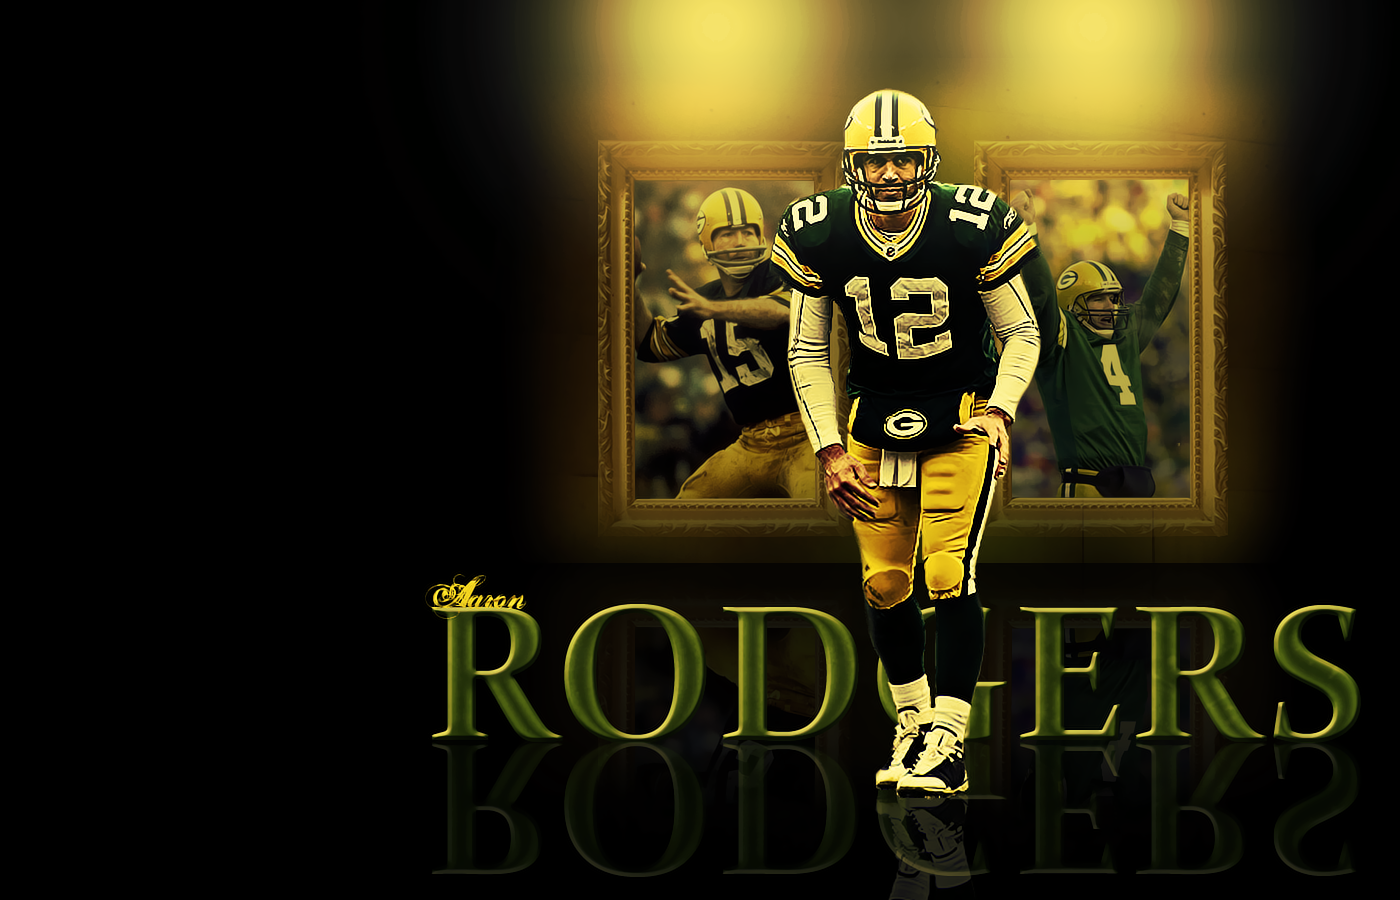 aaron rodgers wall by mdlr52192 on deviantart